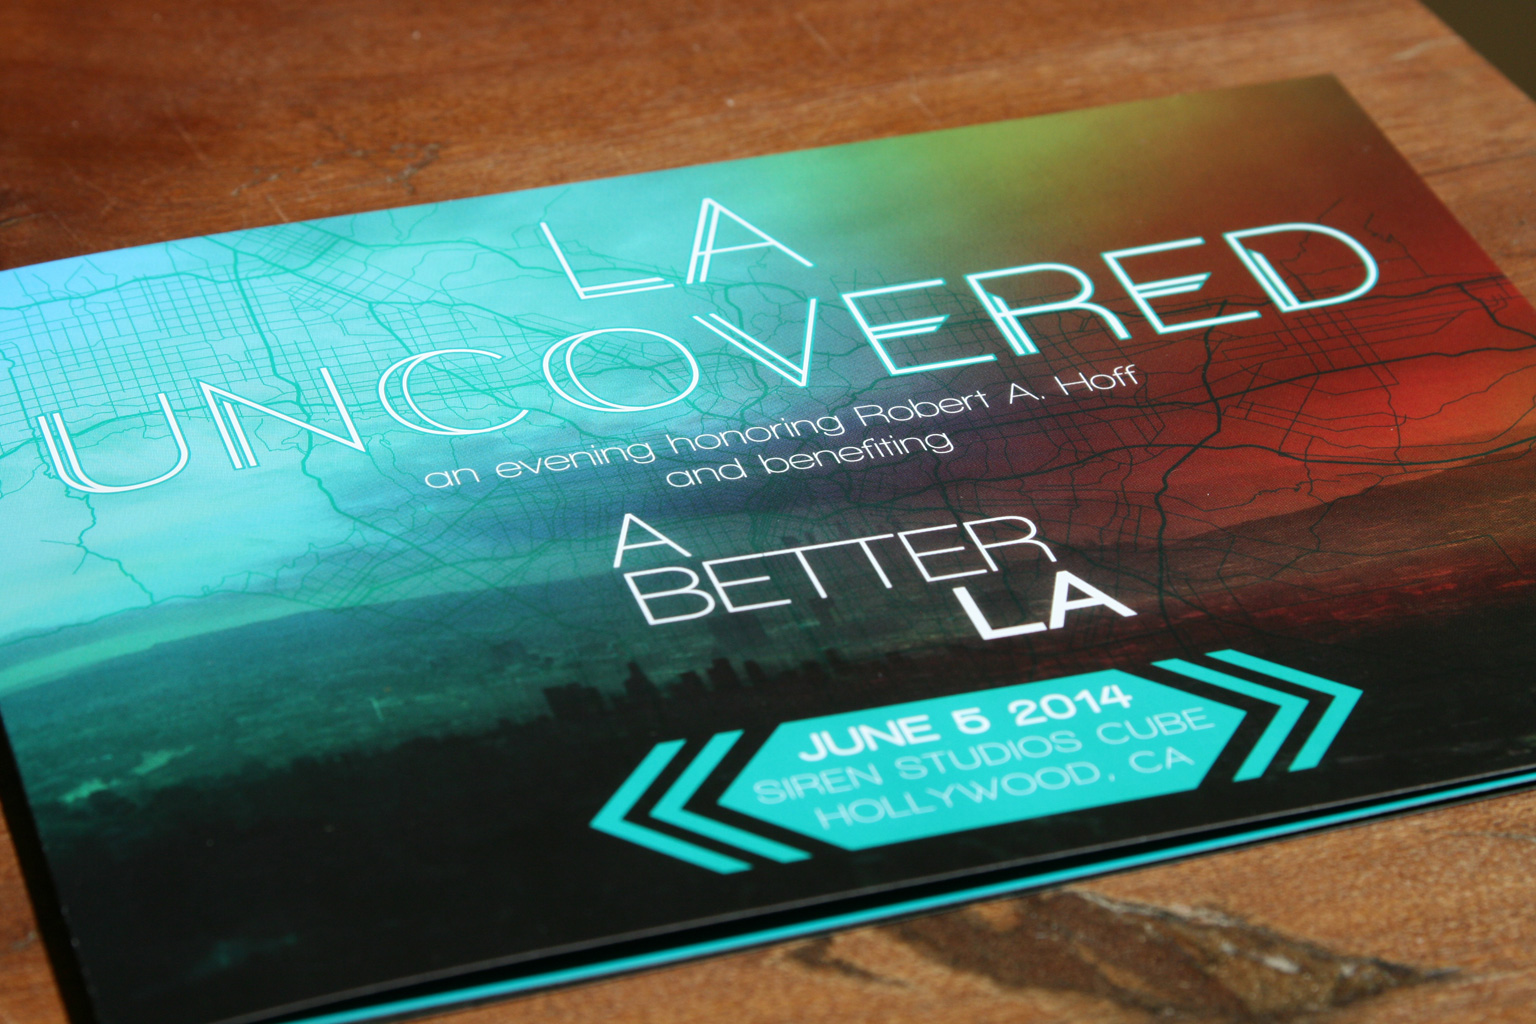 a-better-la_la-uncovered